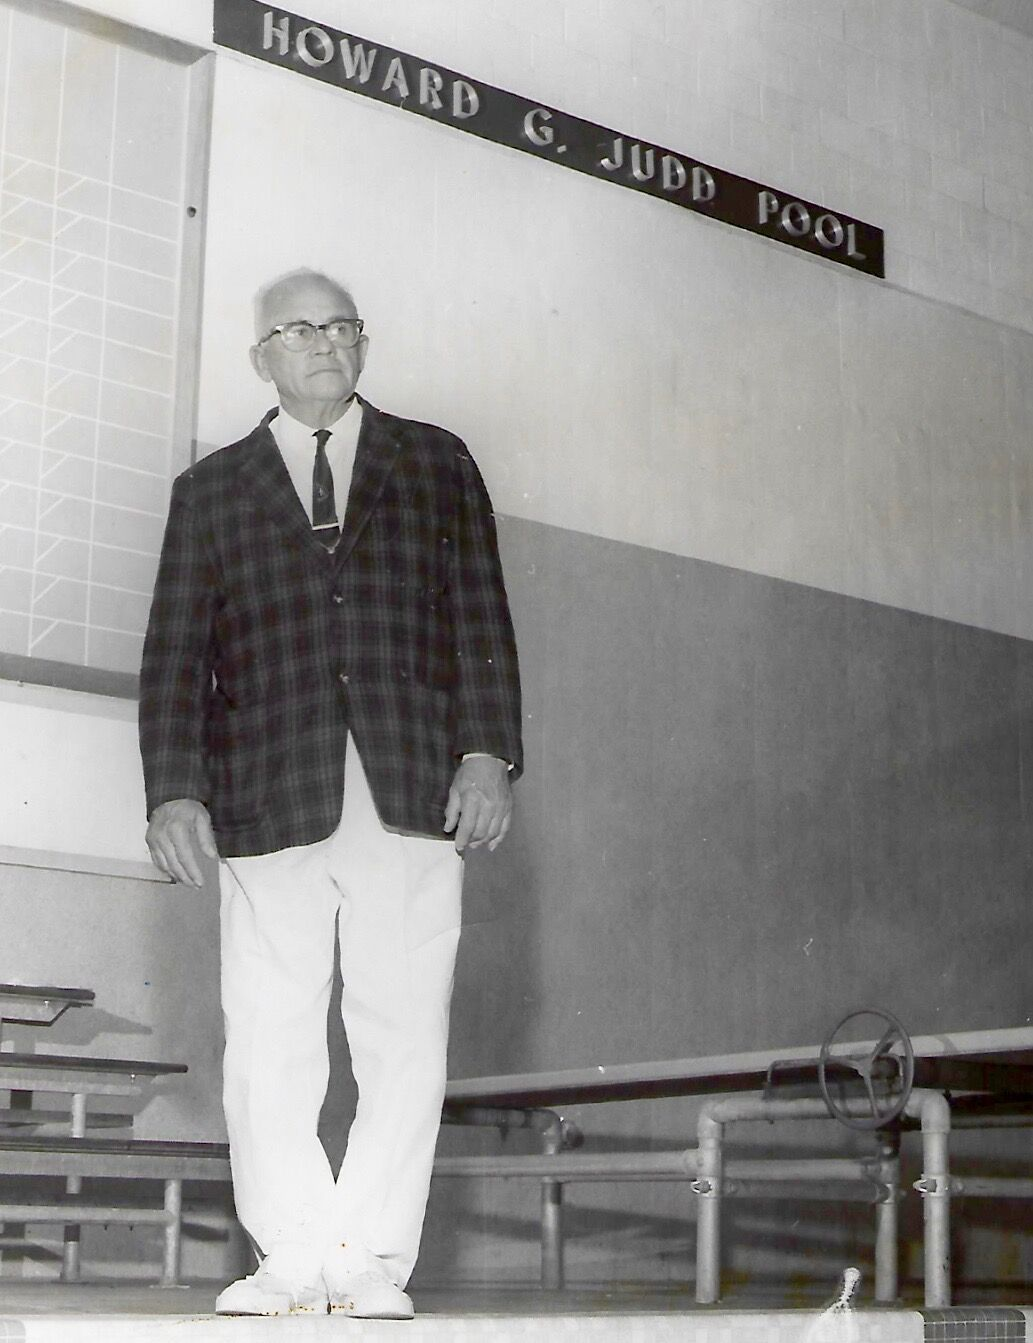 howard judd in front of pool sign